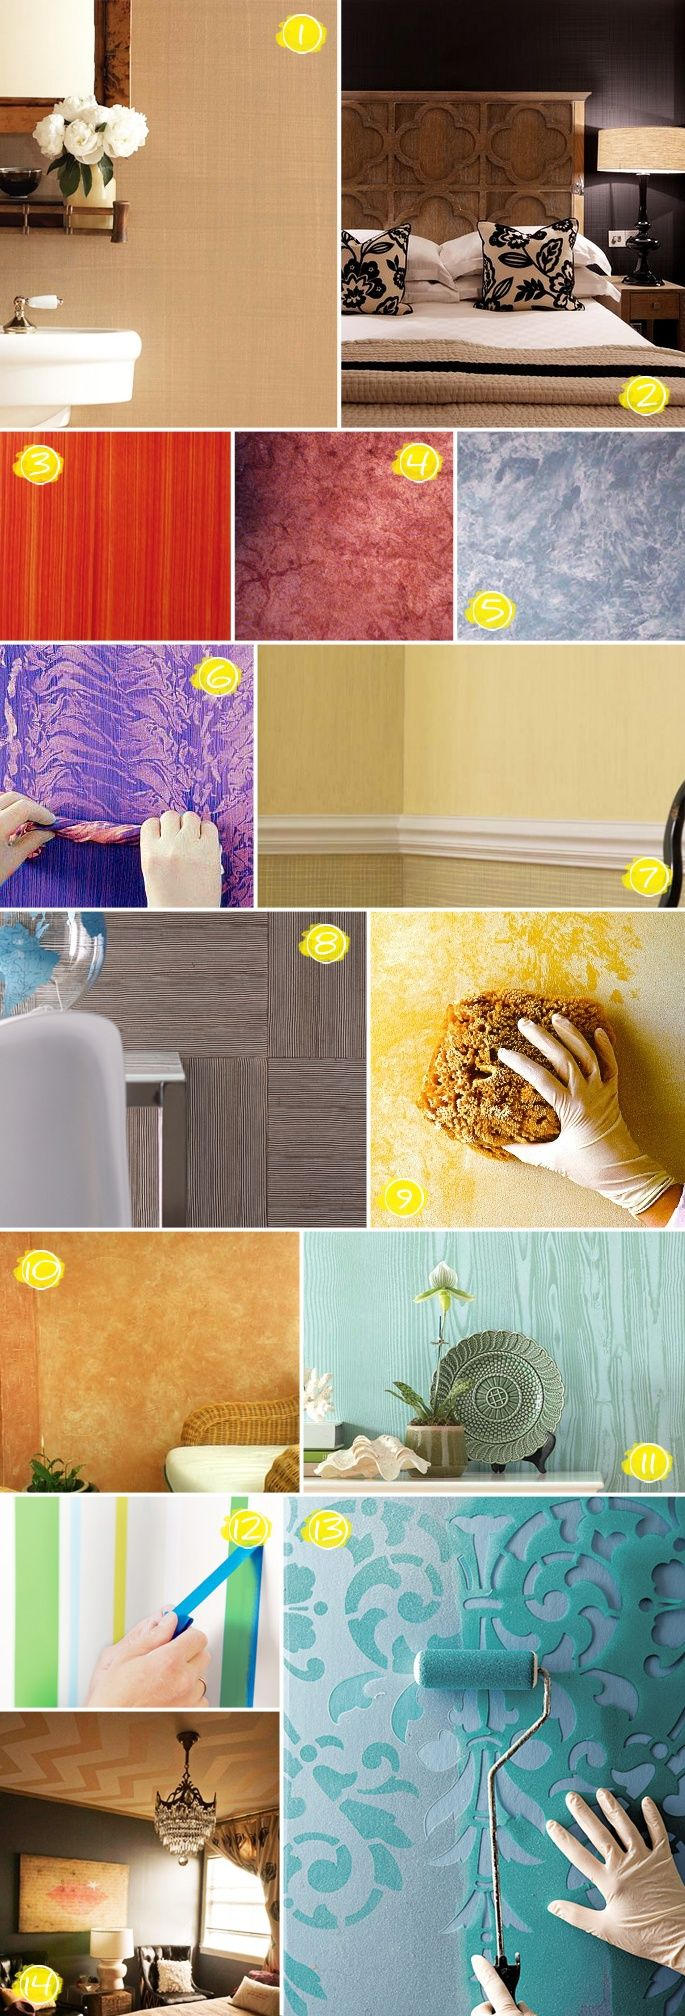 Textured painting ideas - never have a plain wall again! | Apartment ...